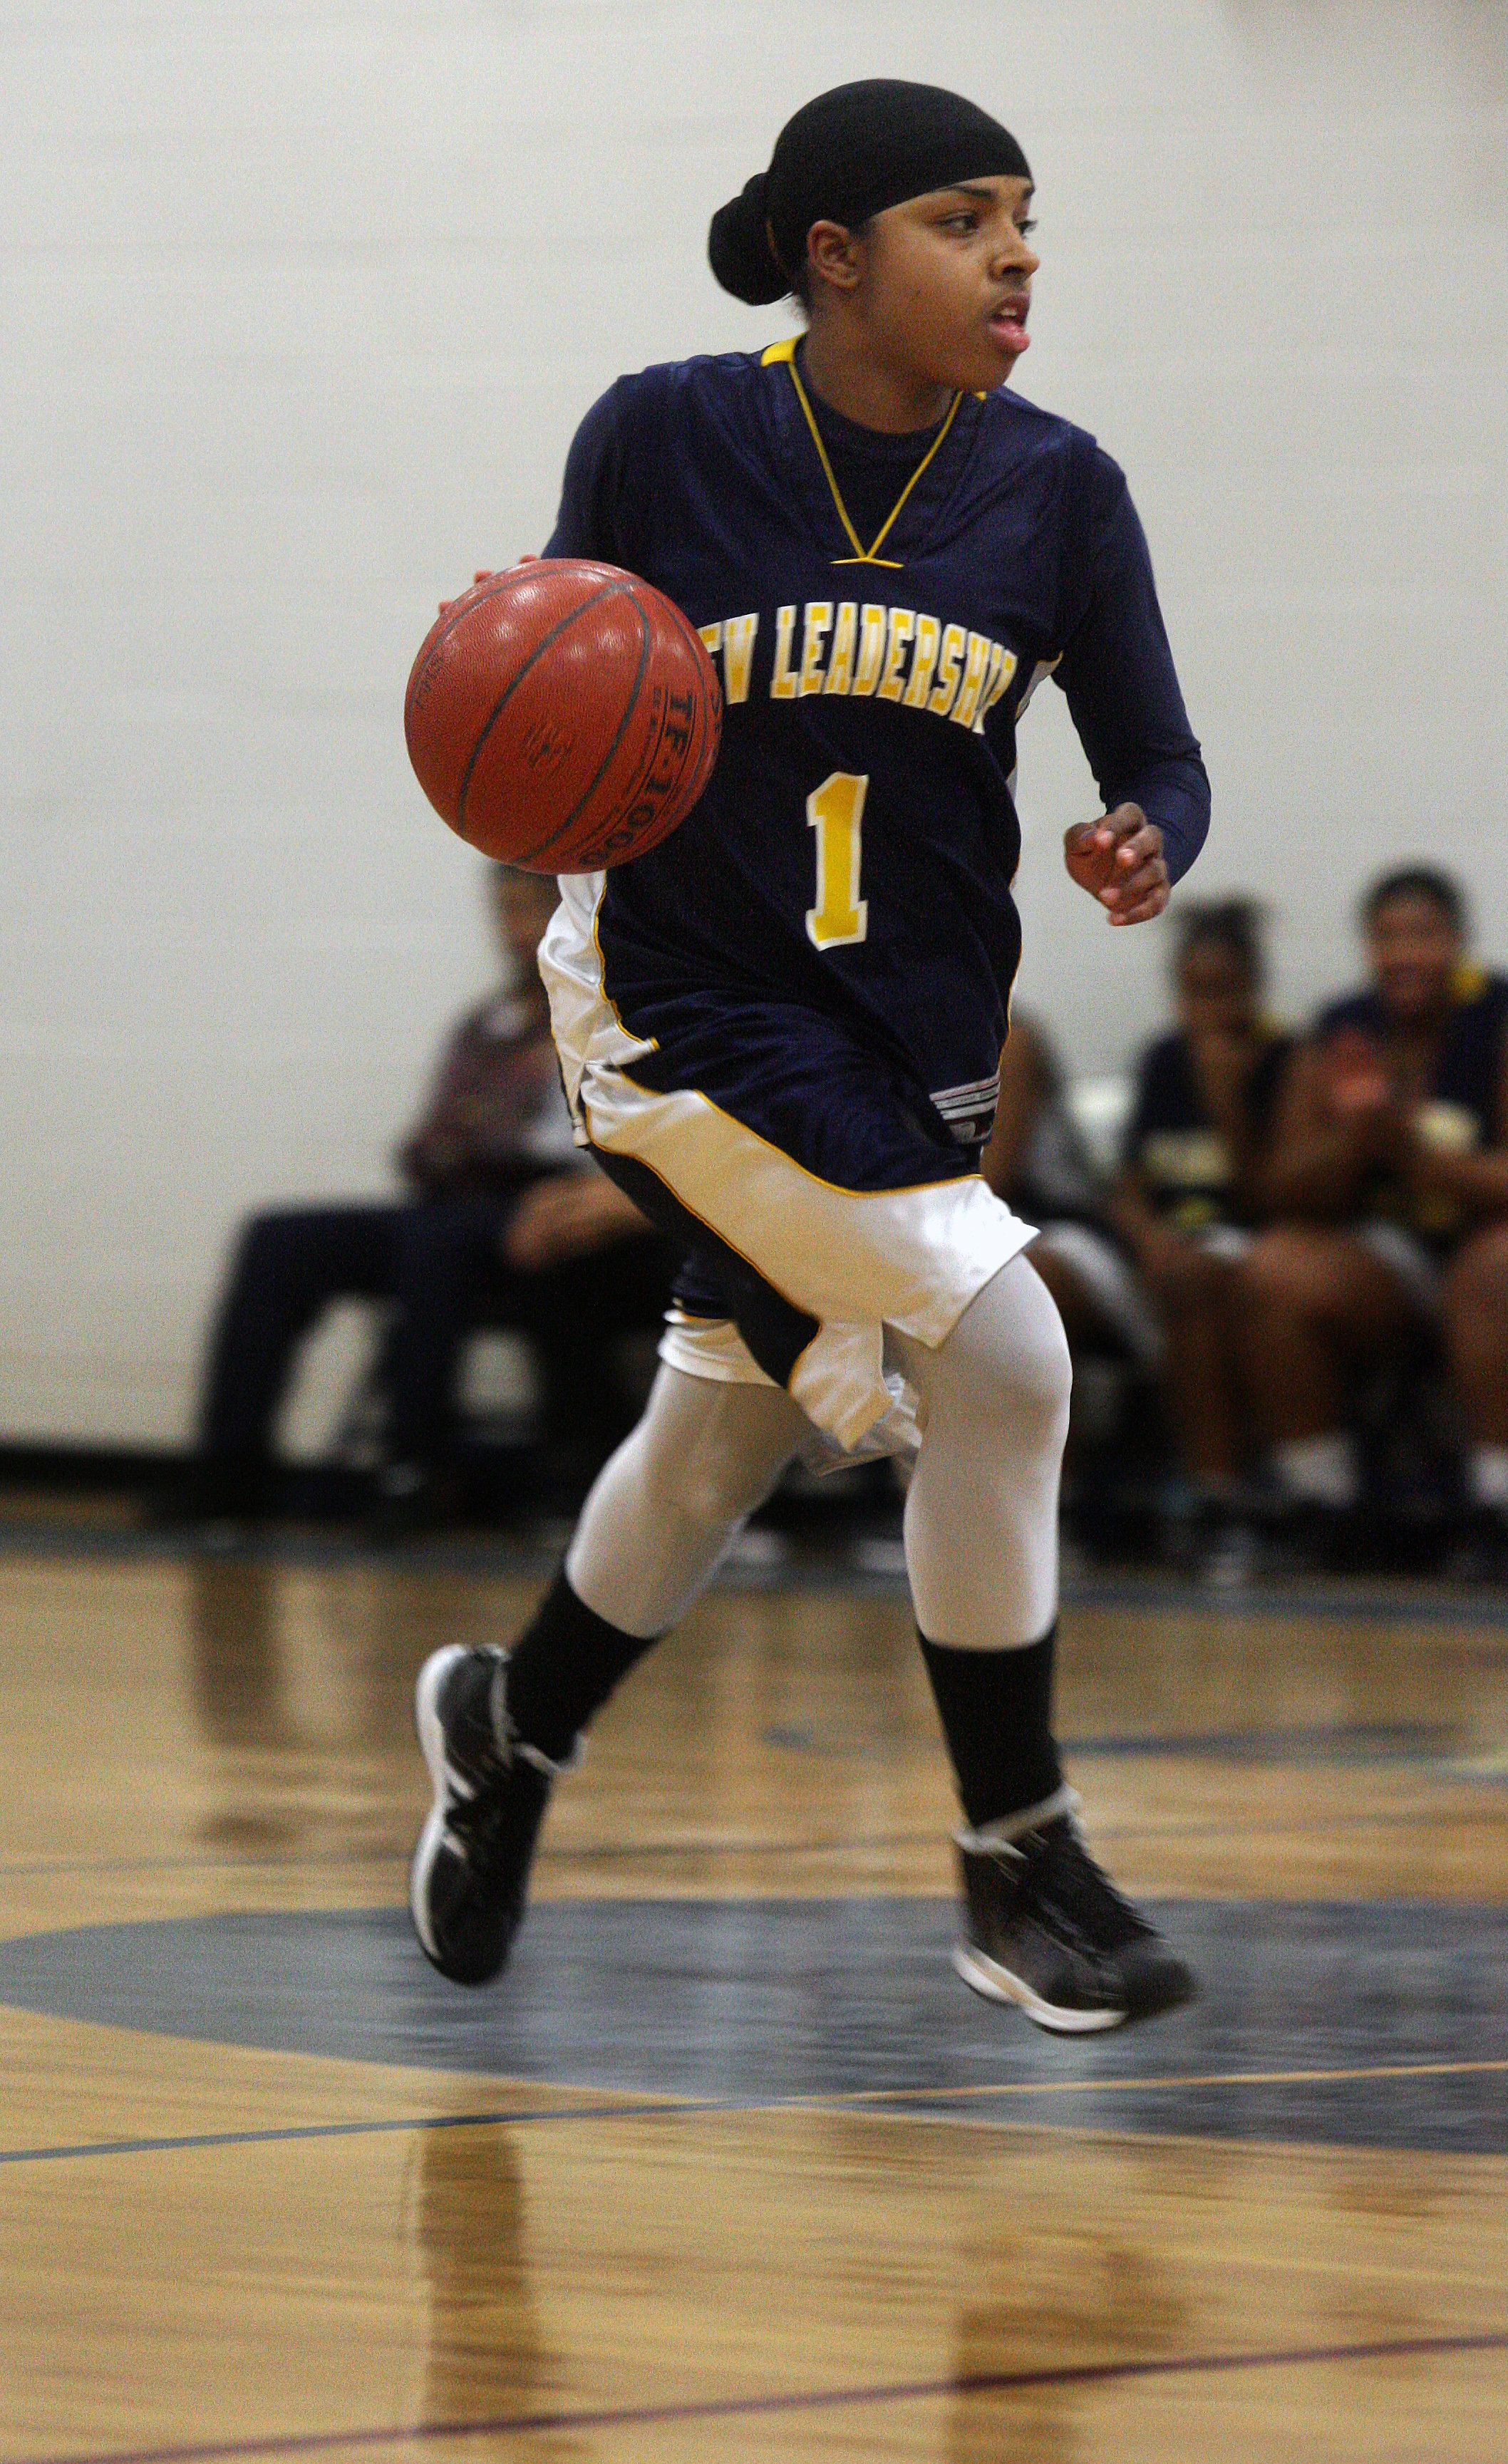 Bilqis Abdul-Qaadir wears a hijab and long sleeves and covers her legs under her uniform when she plays basketball.